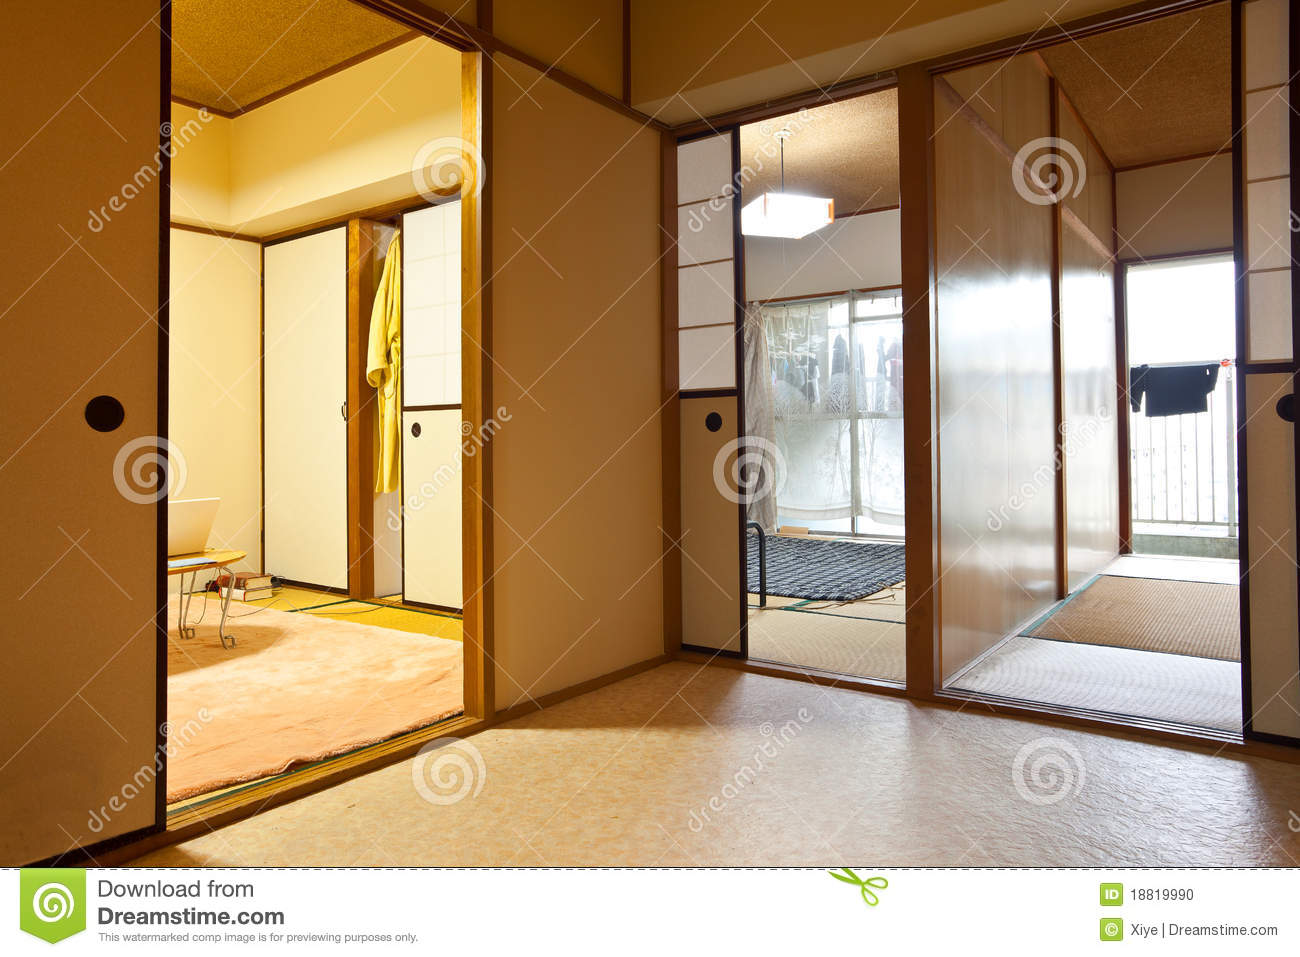 typical japanese house editorial stock photo - image: 21504908